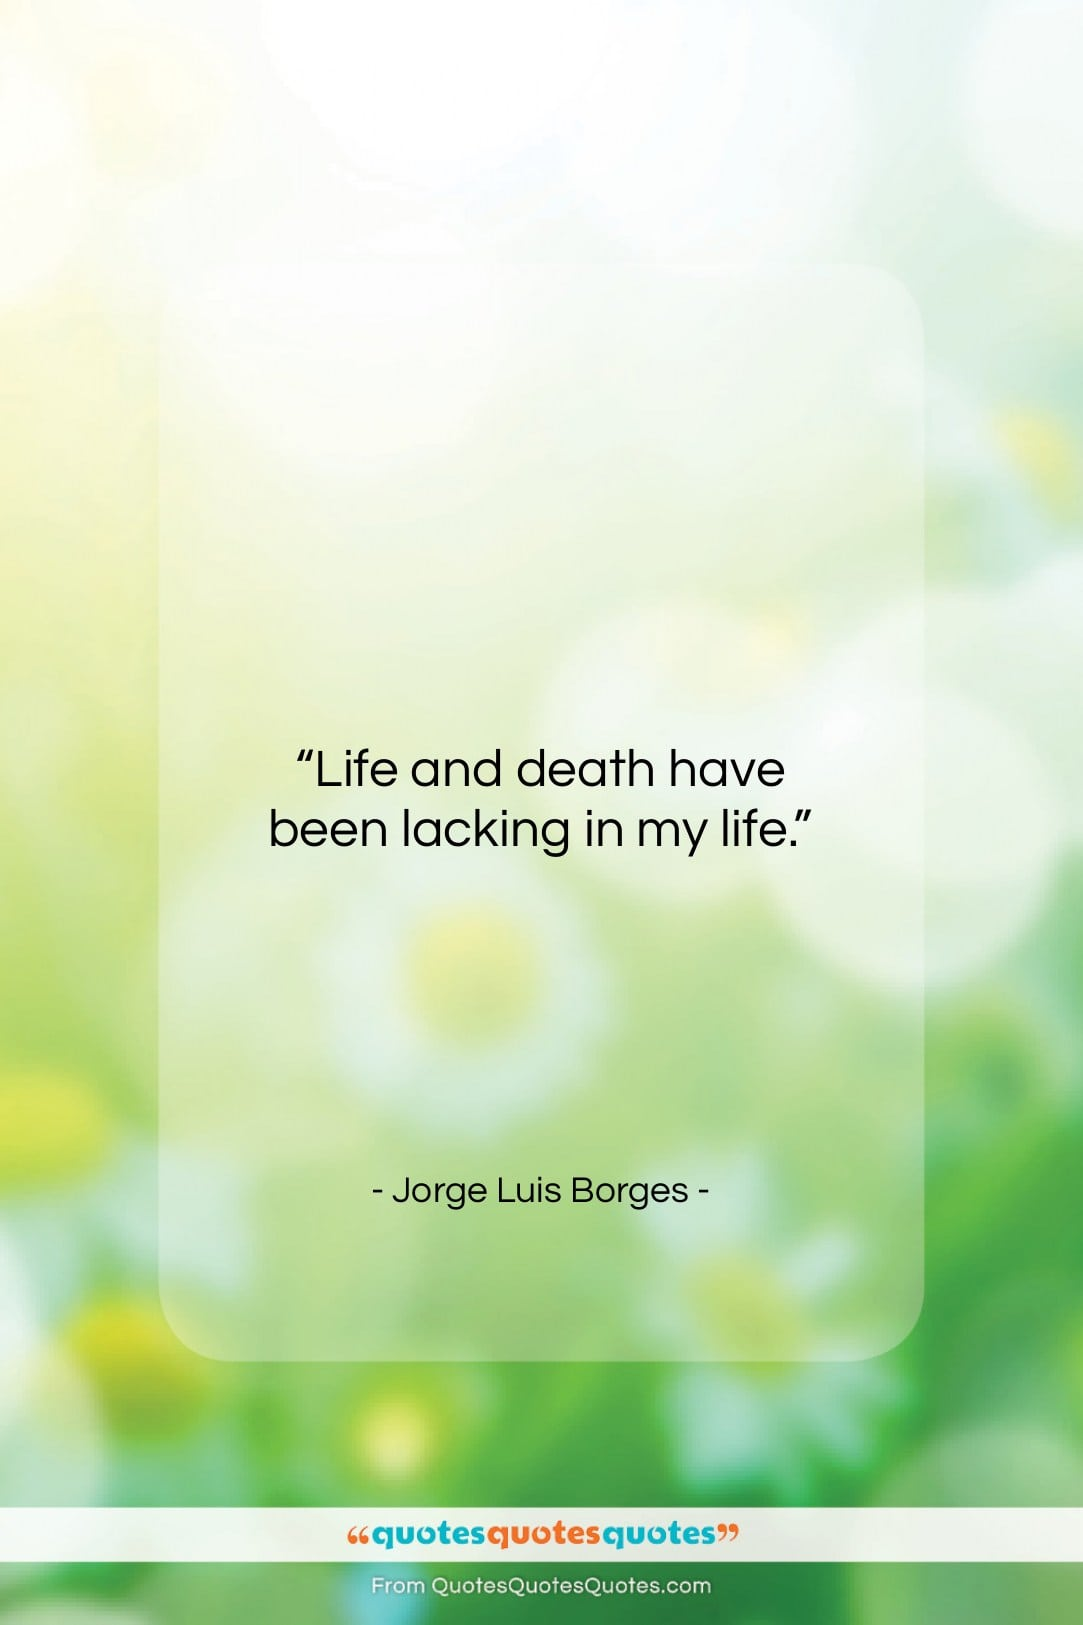 """Jorge Luis Borges quote: """"Life and death have been lacking in…""""- at QuotesQuotesQuotes.com"""